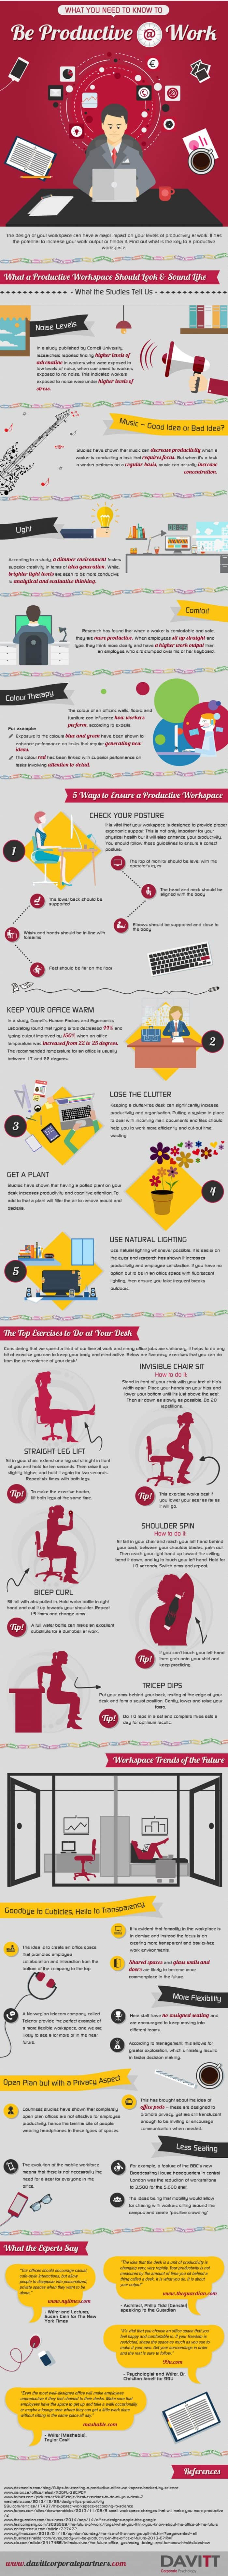 infographic describes How to be productive at work